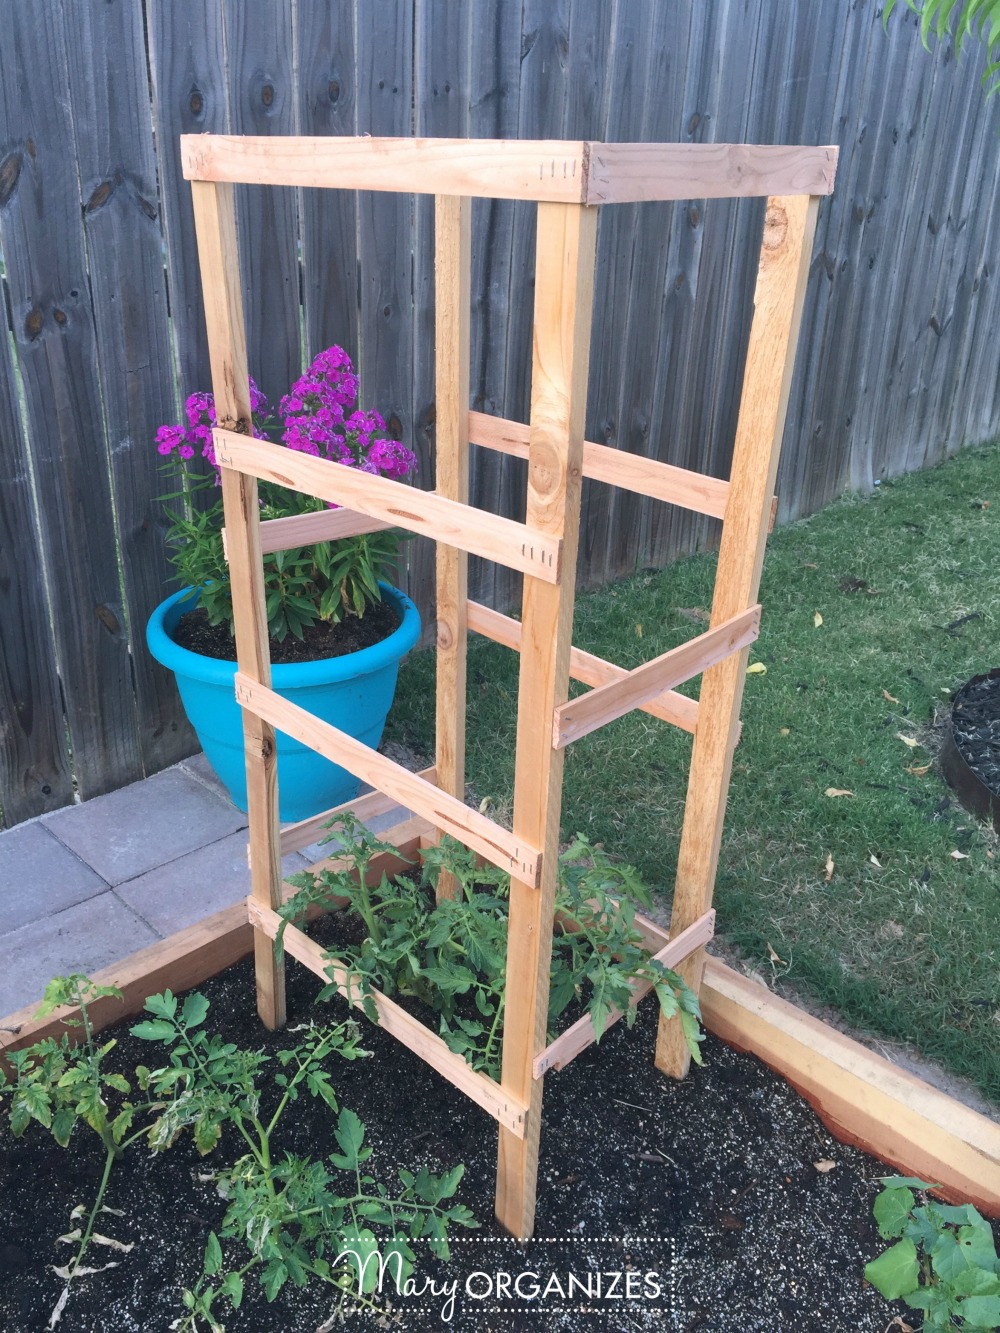 DIY Tomato Cage Tutorial for the Organic Garden 1